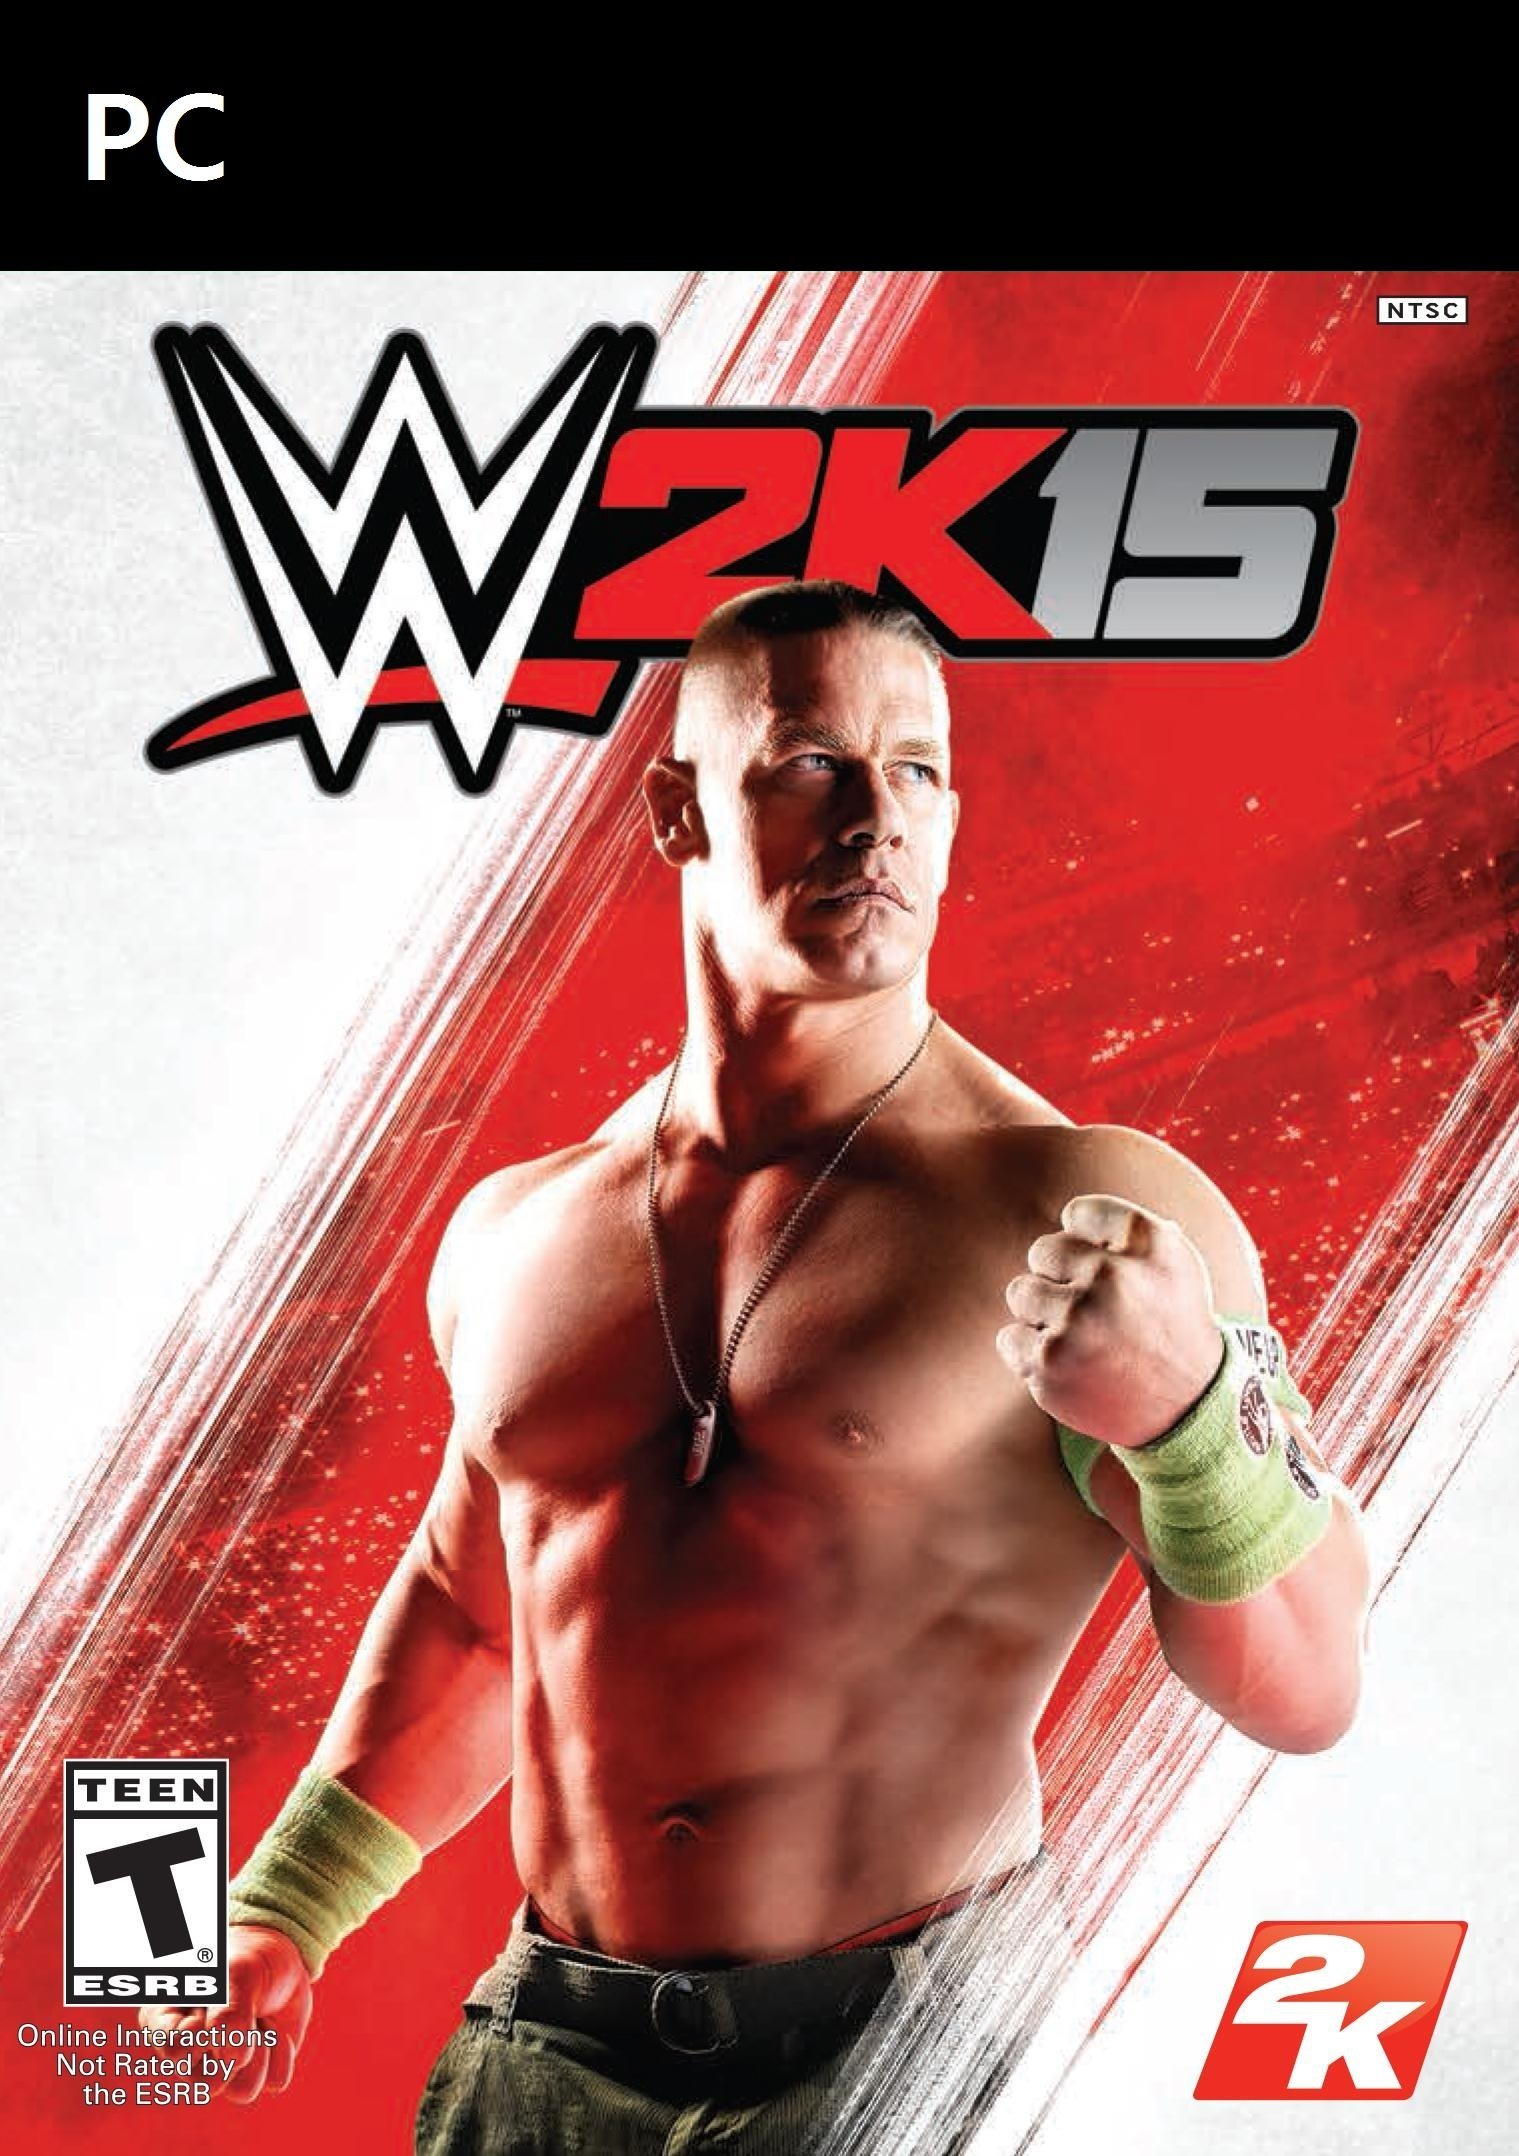 WWE 2K15 PC DVD.jpg